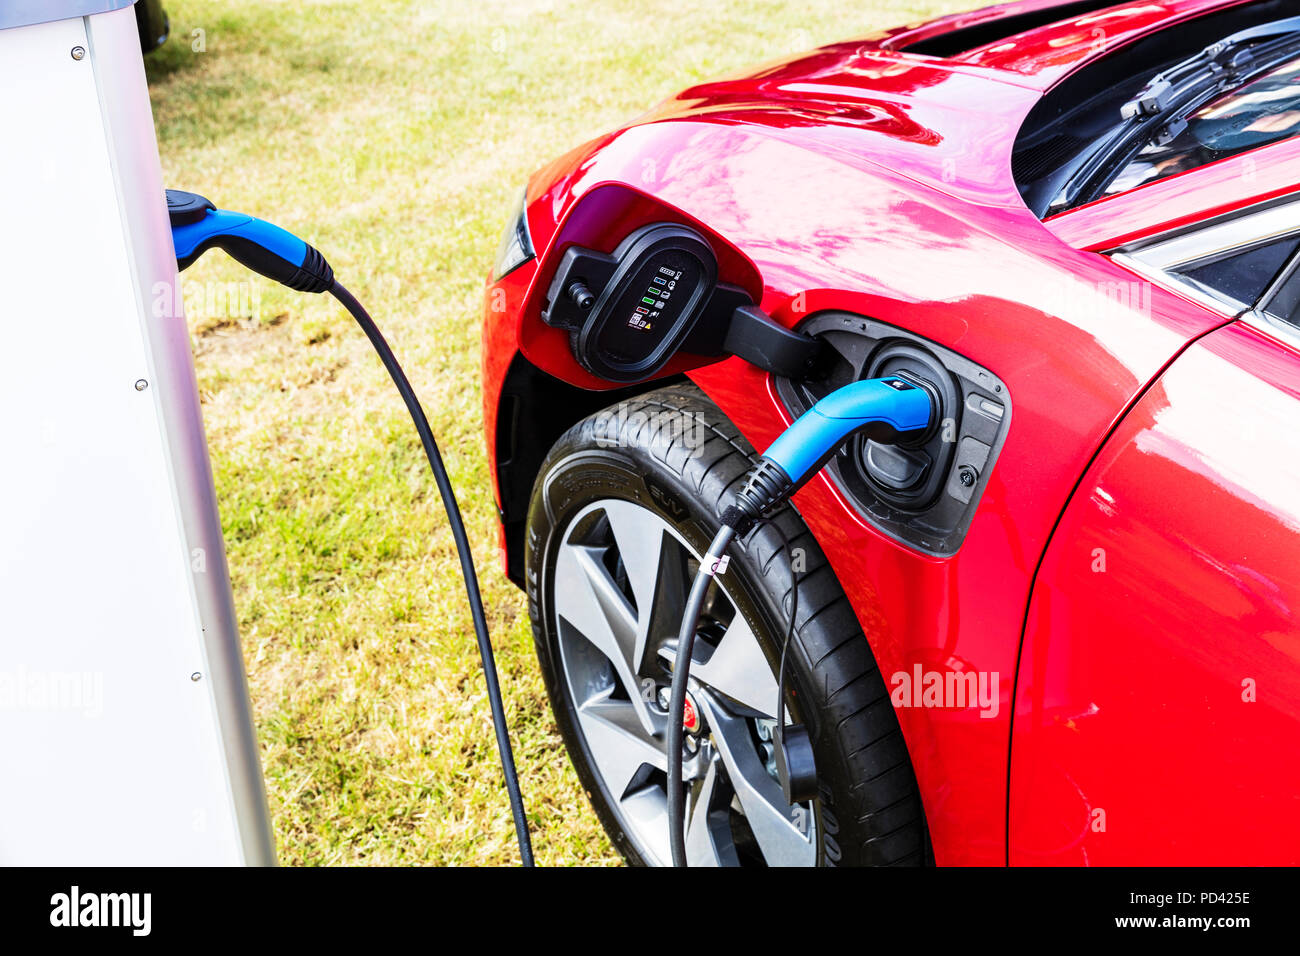 Battery Powered Car, Zero vehicle Emissions, Government Plug-In Car Grant, Plug-In Car Grant, Plug-In Car, electric charge point, electric car charge - Stock Image